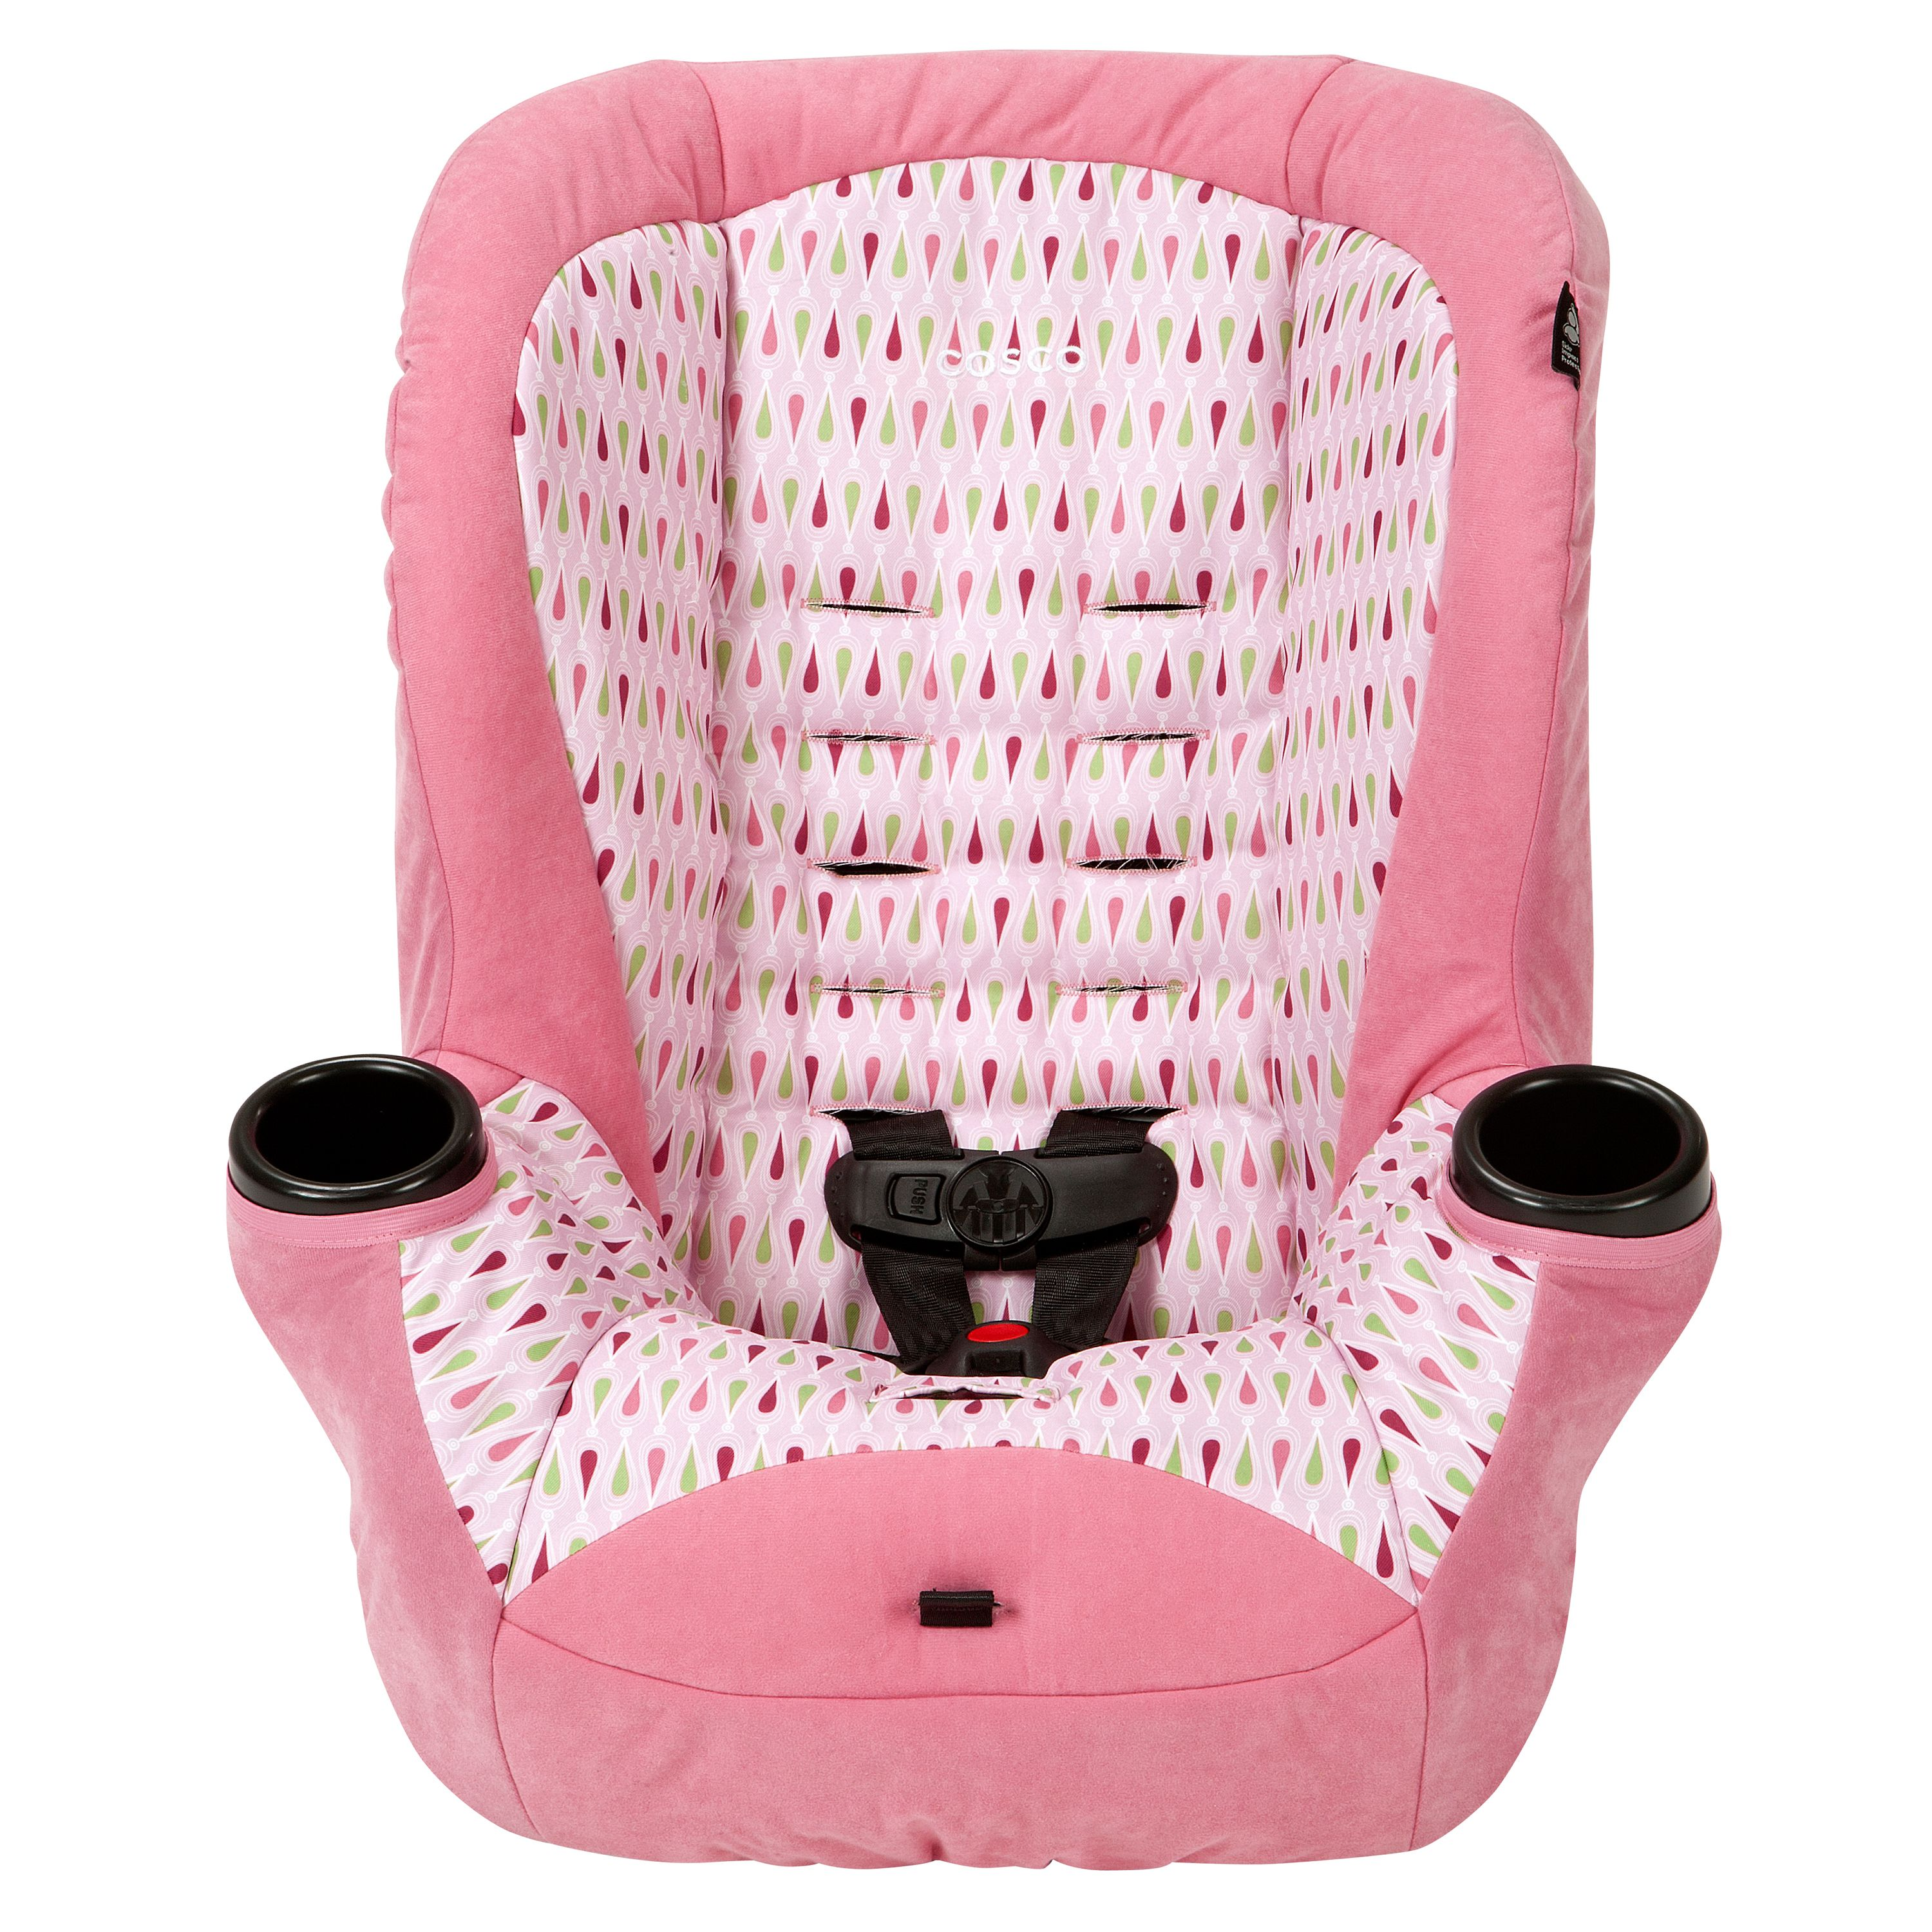 Cosco Apt 40 Rear & Forward Facing Convertible Car Seat, Teardrop